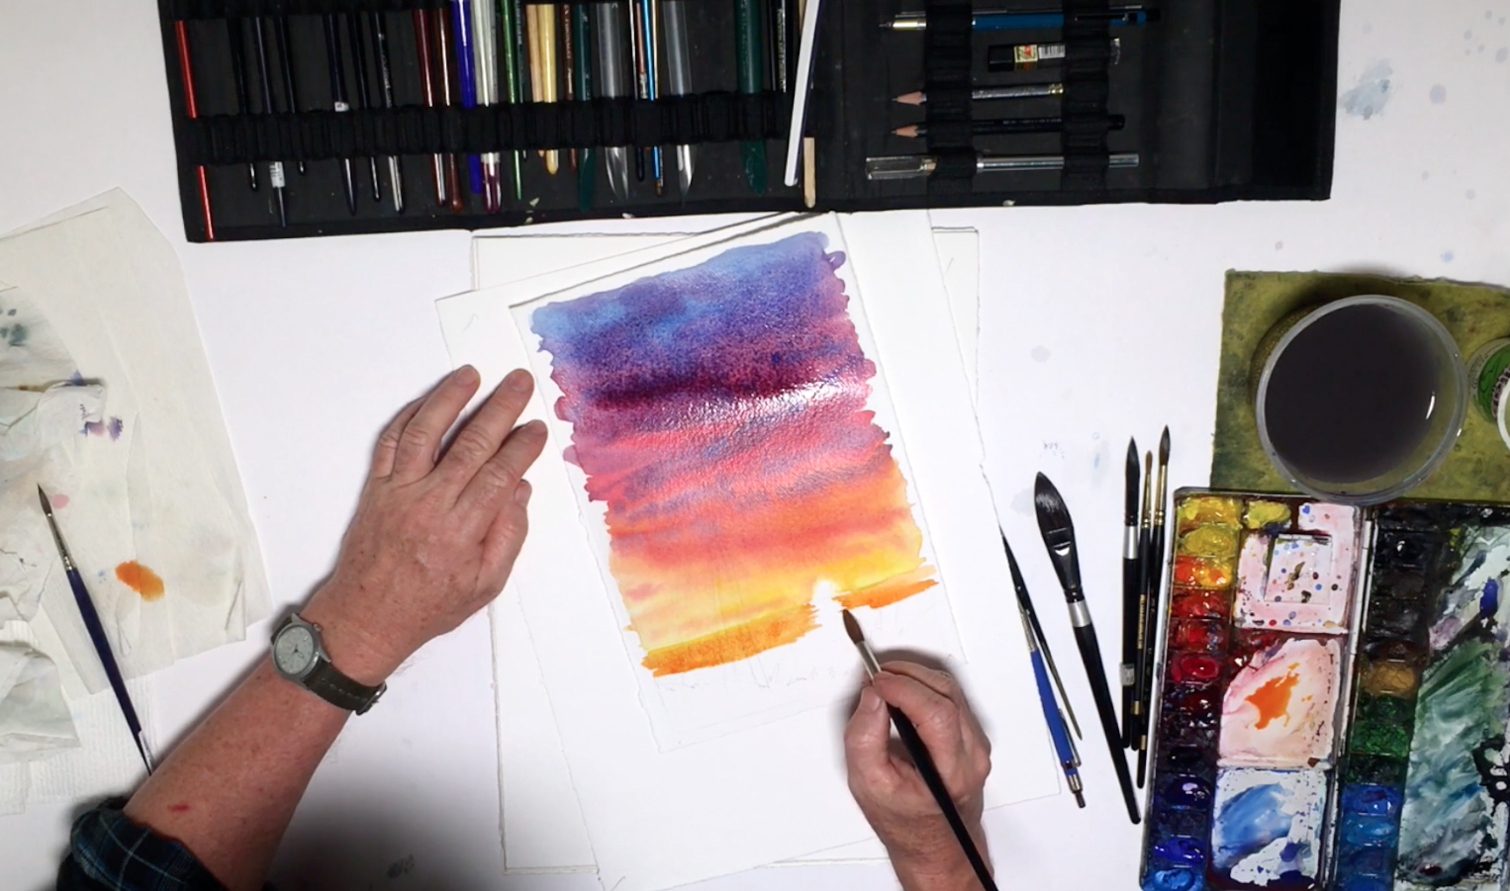 1510x891 How To Watercolor Paint A Sunset Sky With Silhouettes